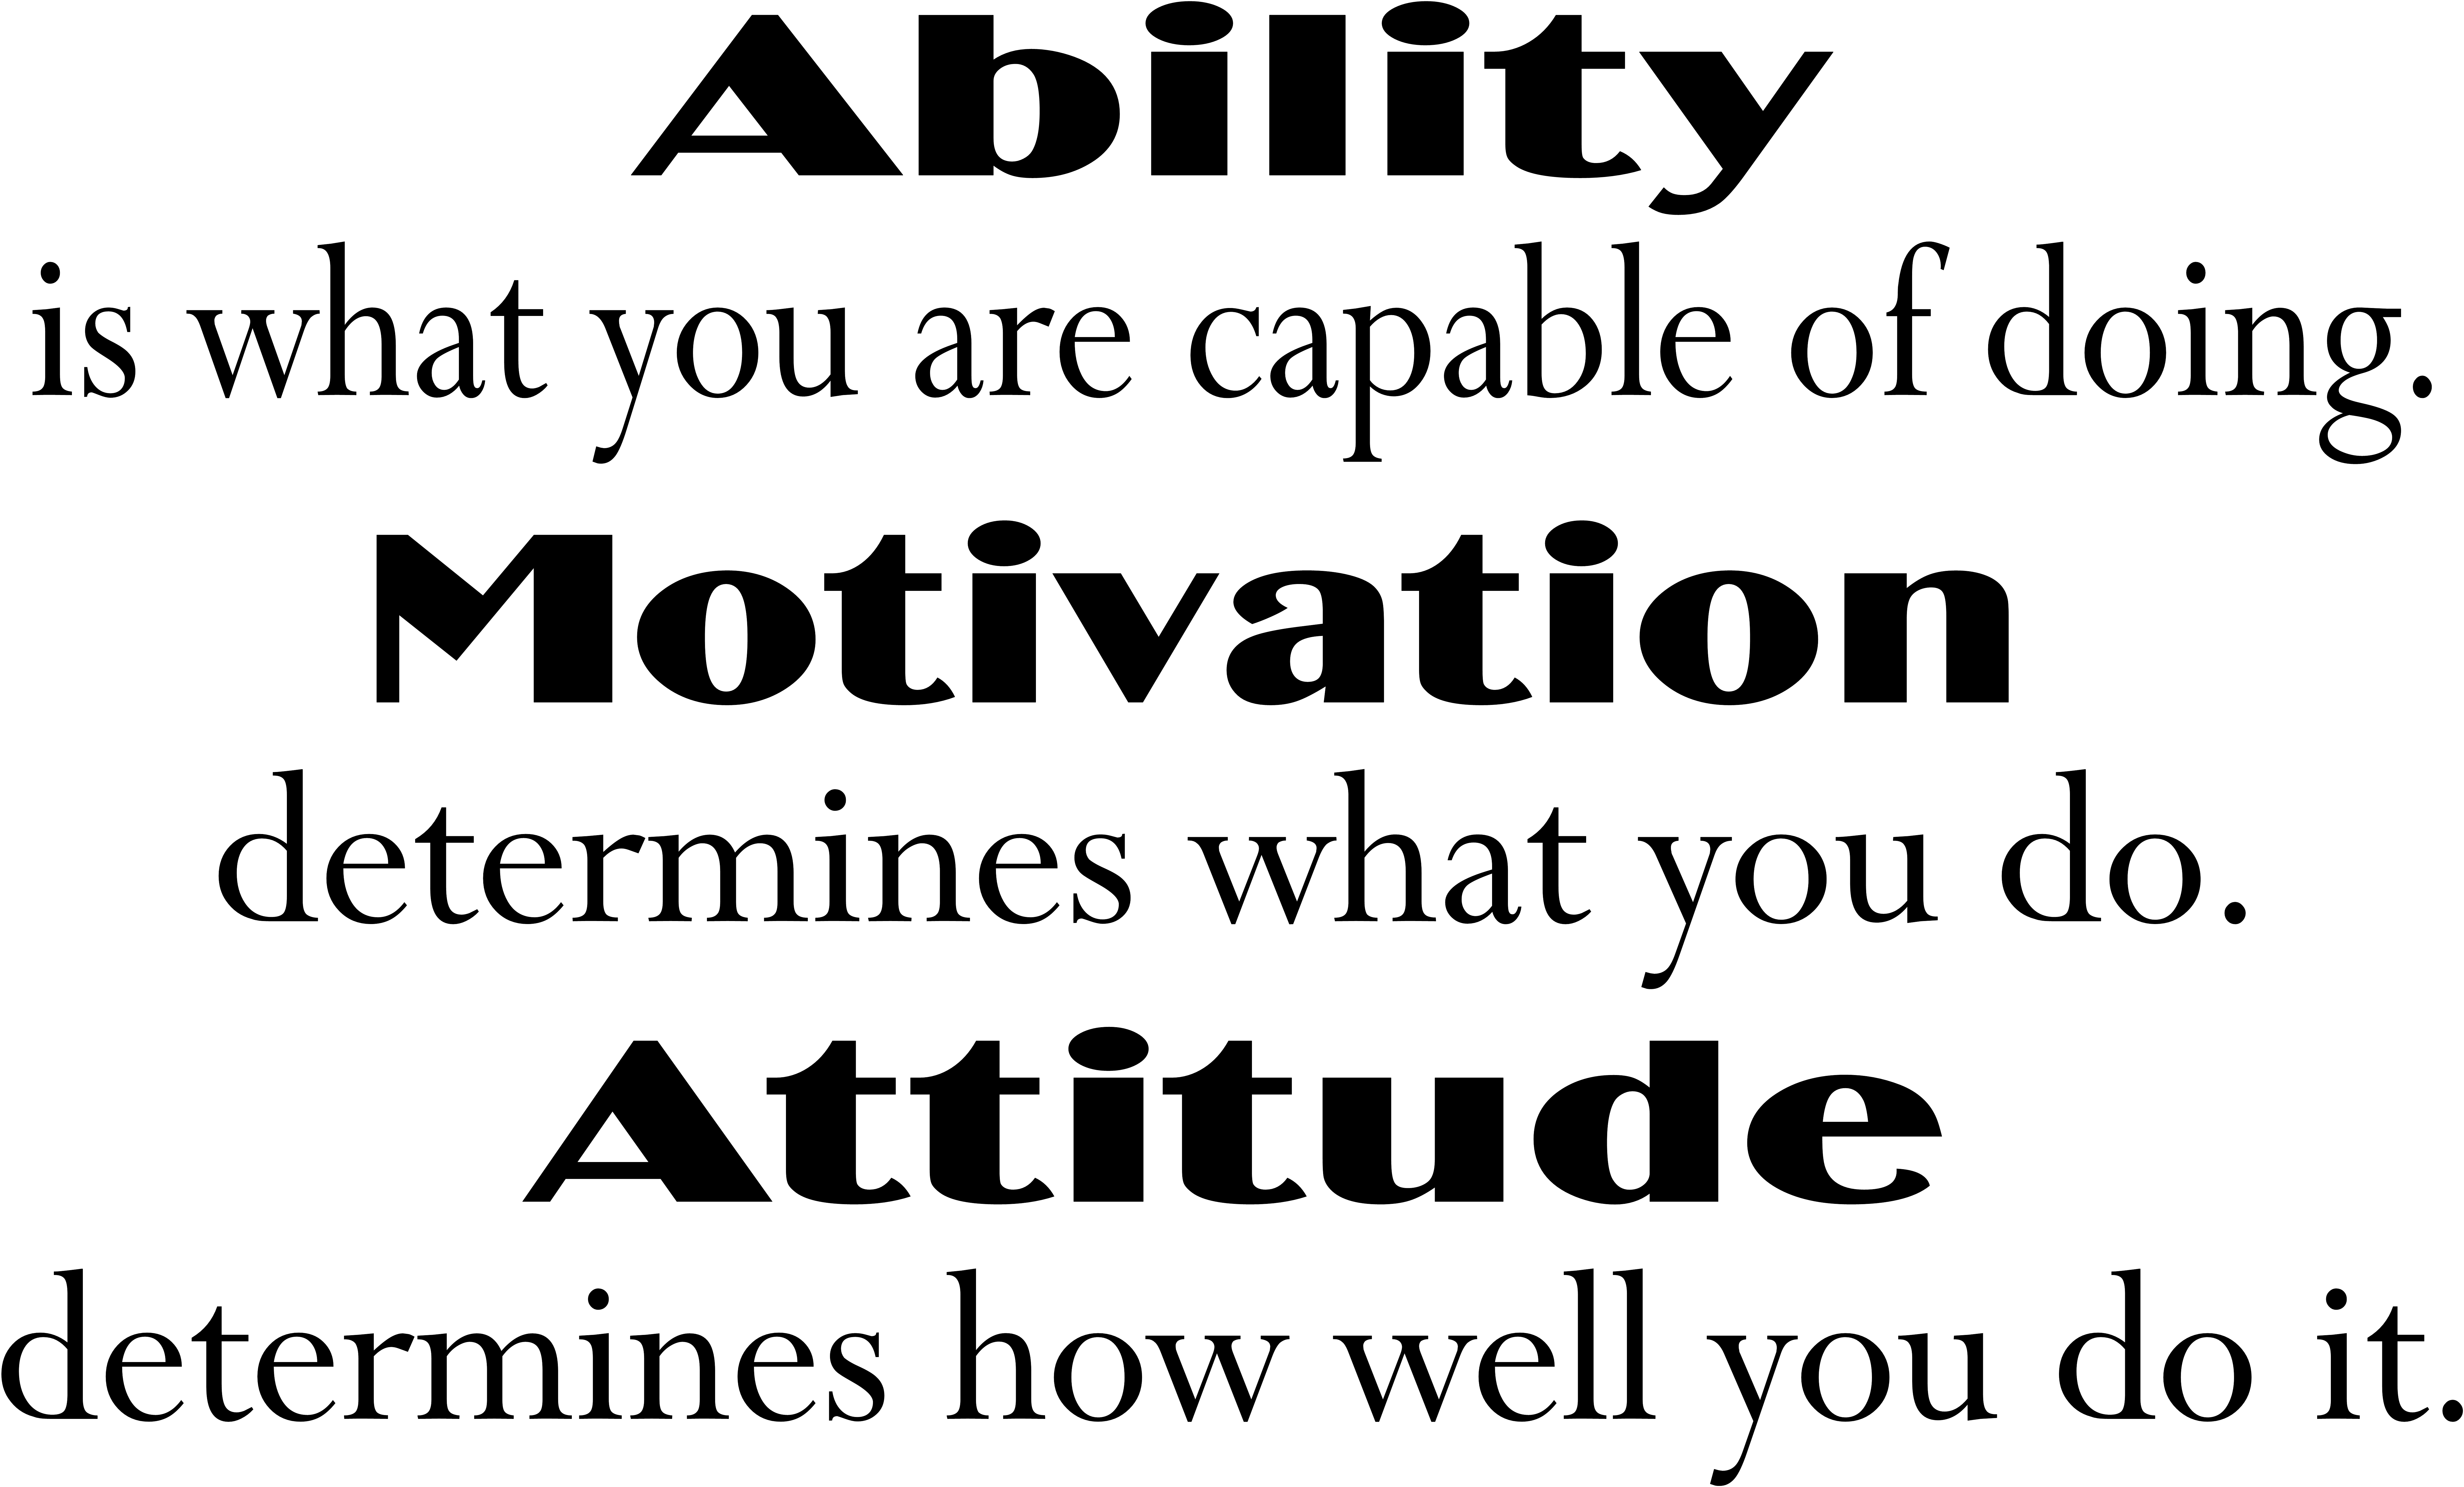 Ability motivation attitude motivational wall quote school wall ability motivation attitude motivational wall quote school wall decal office vinyl wall lettering m110 thecheapjerseys Choice Image